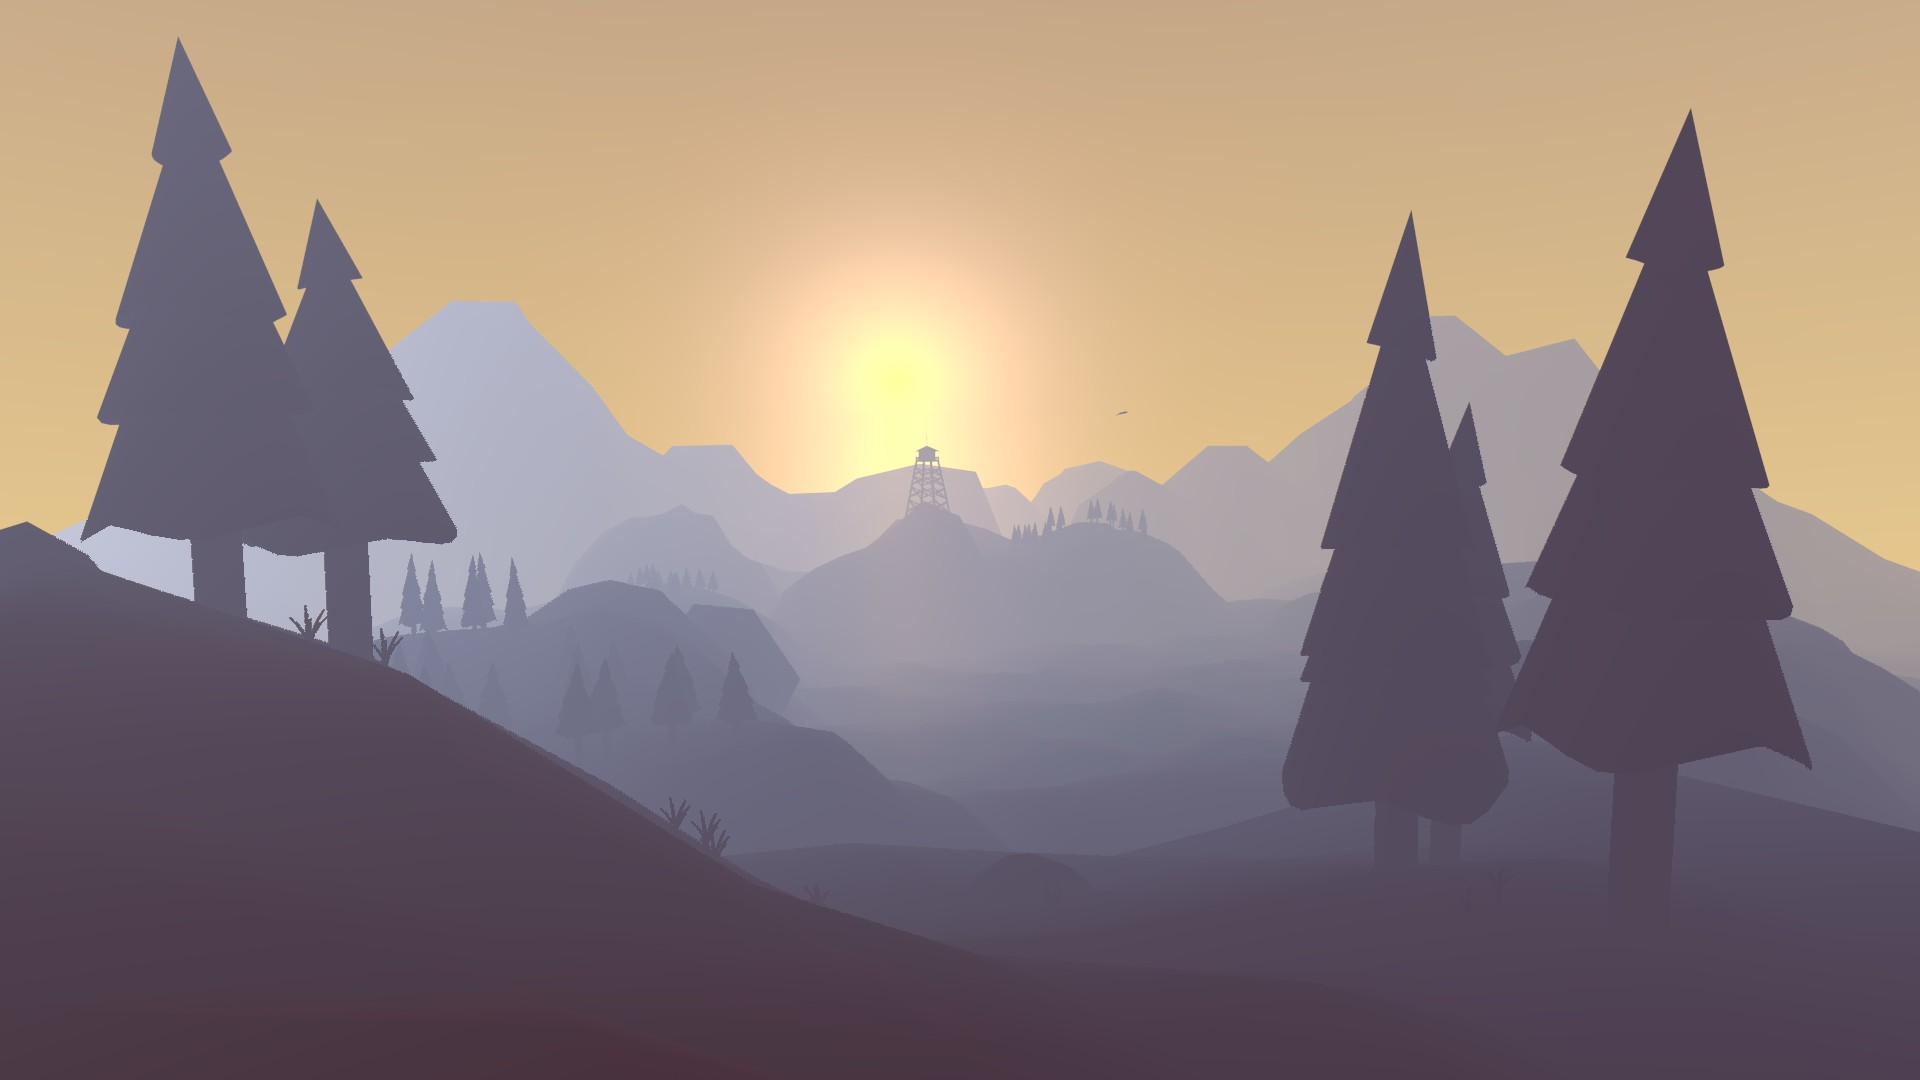 Low Poly Iphone X Wallpaper 38 Firewatch Wallpapers 183 ① Download Free Beautiful High